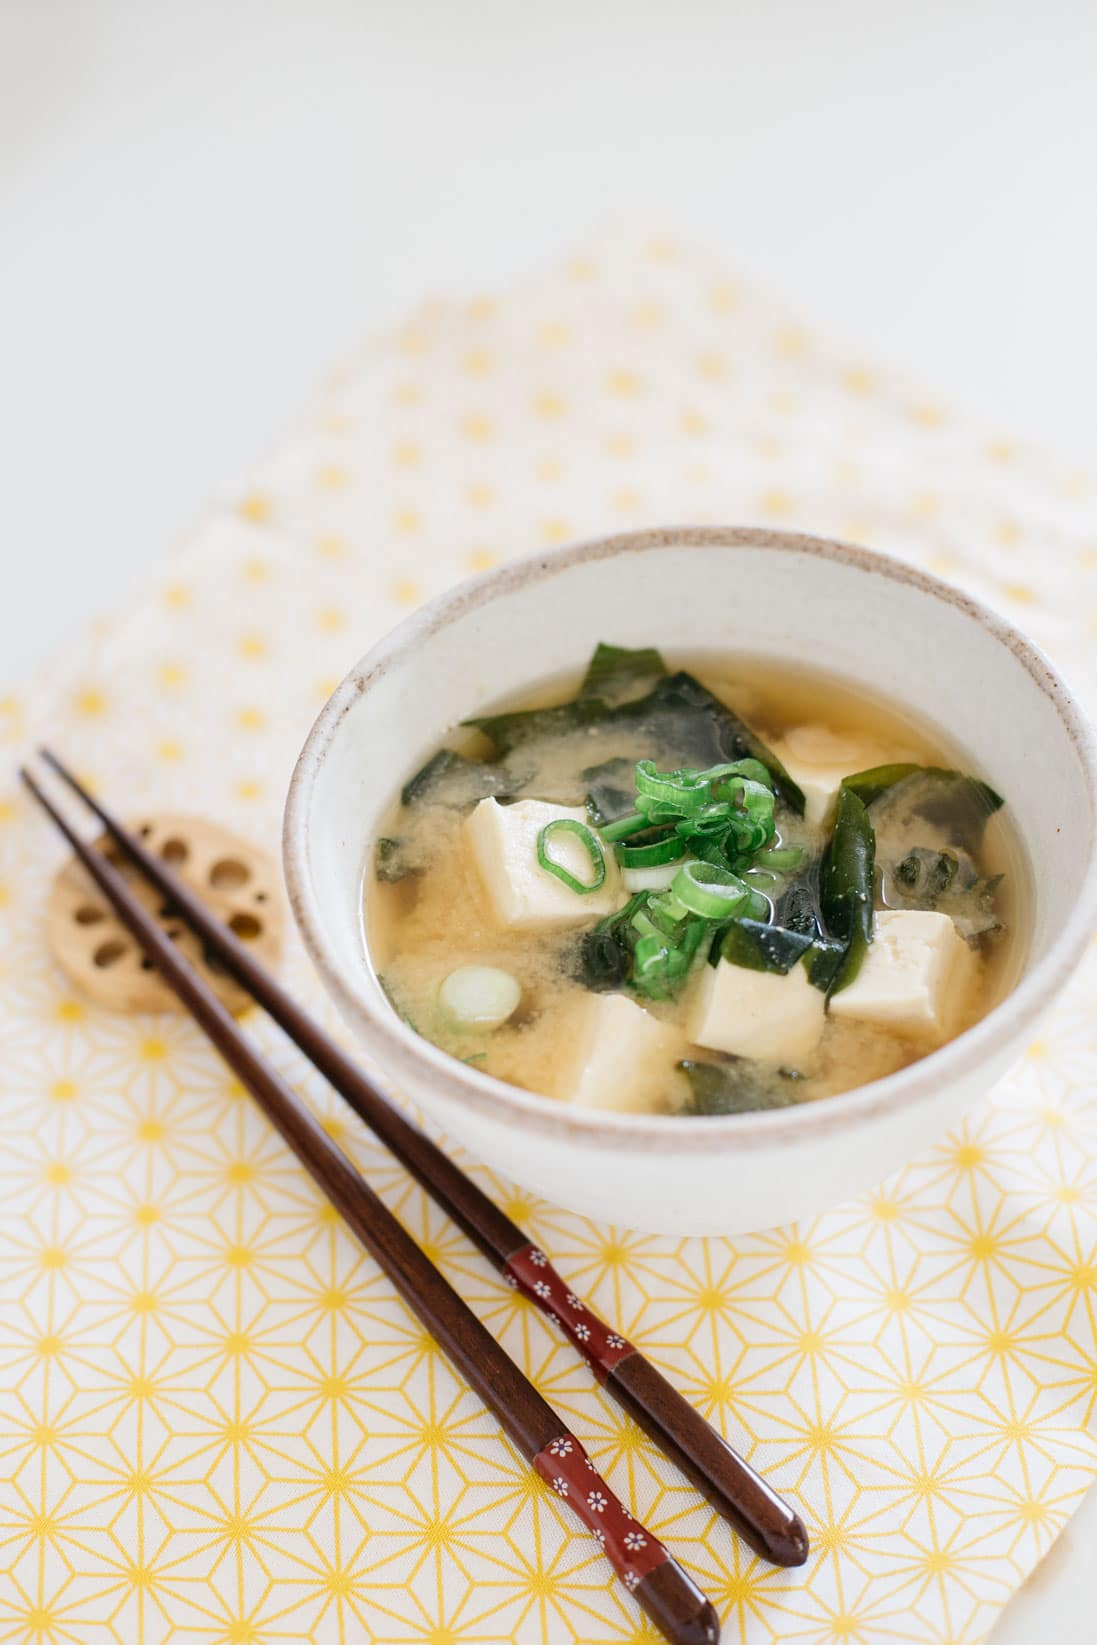 How to make miso soup without paste